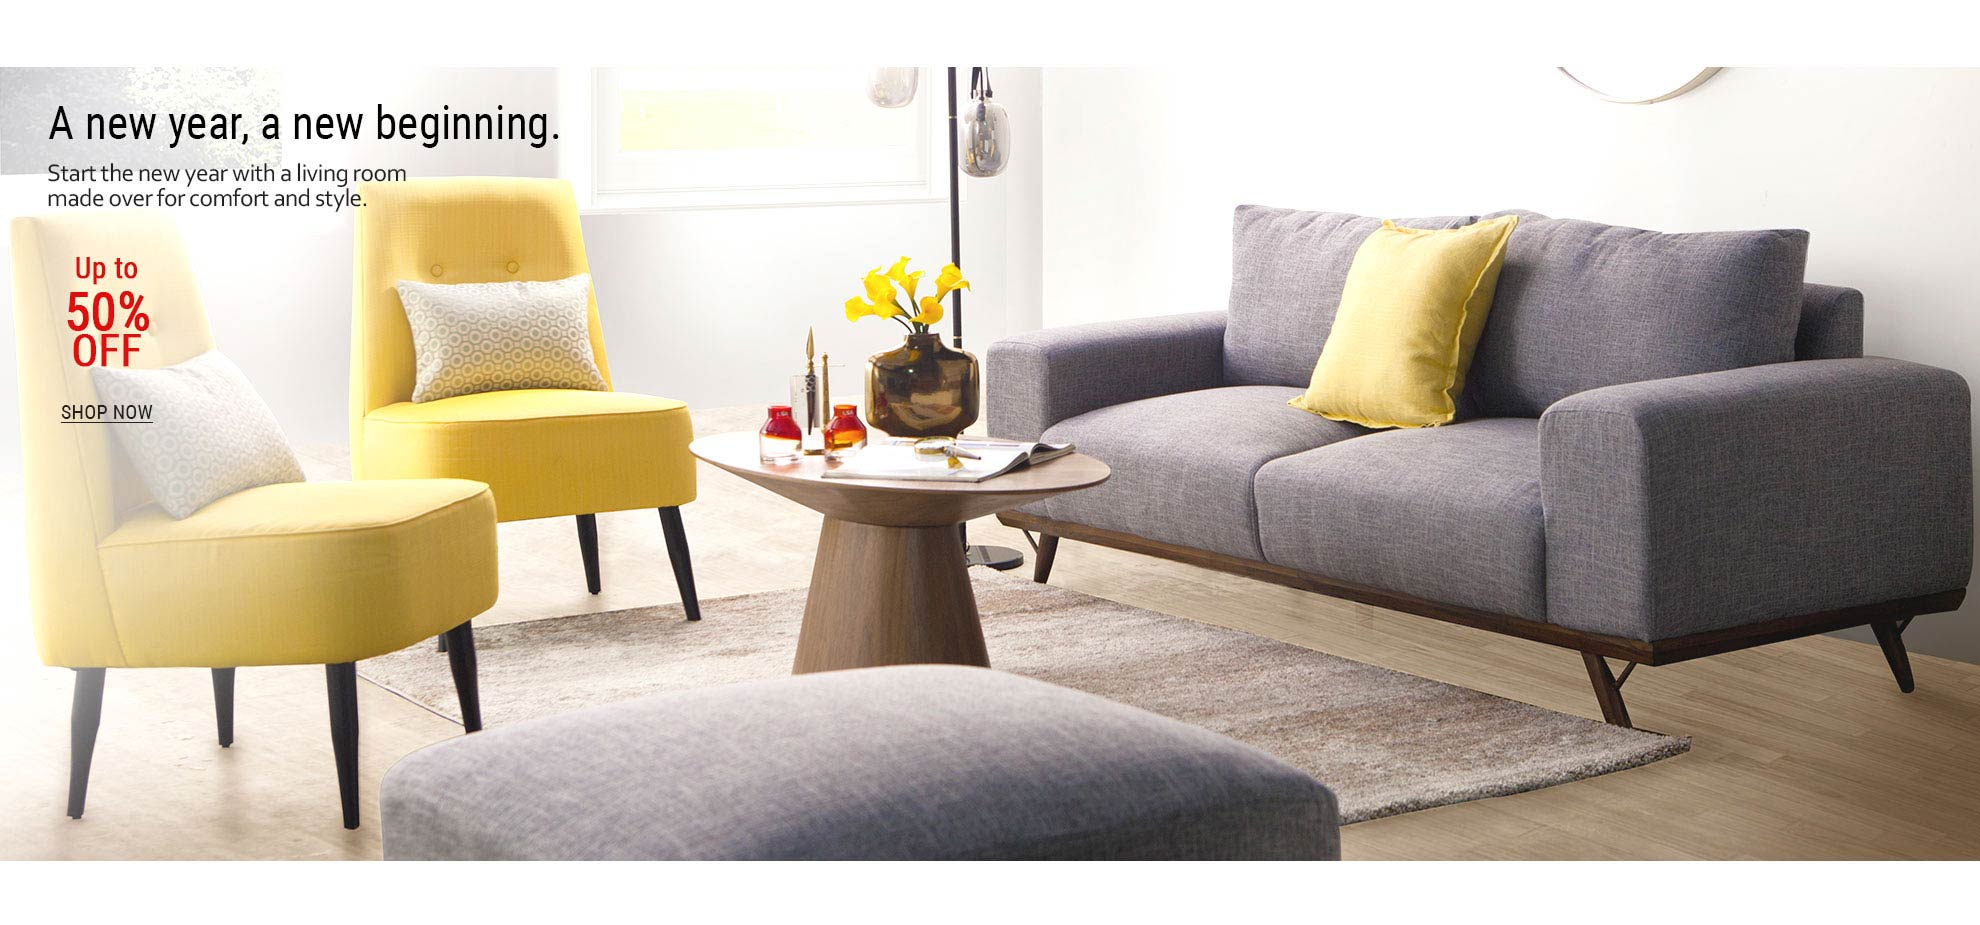 05-Living room featuring yellow accent chairs and gray sofa